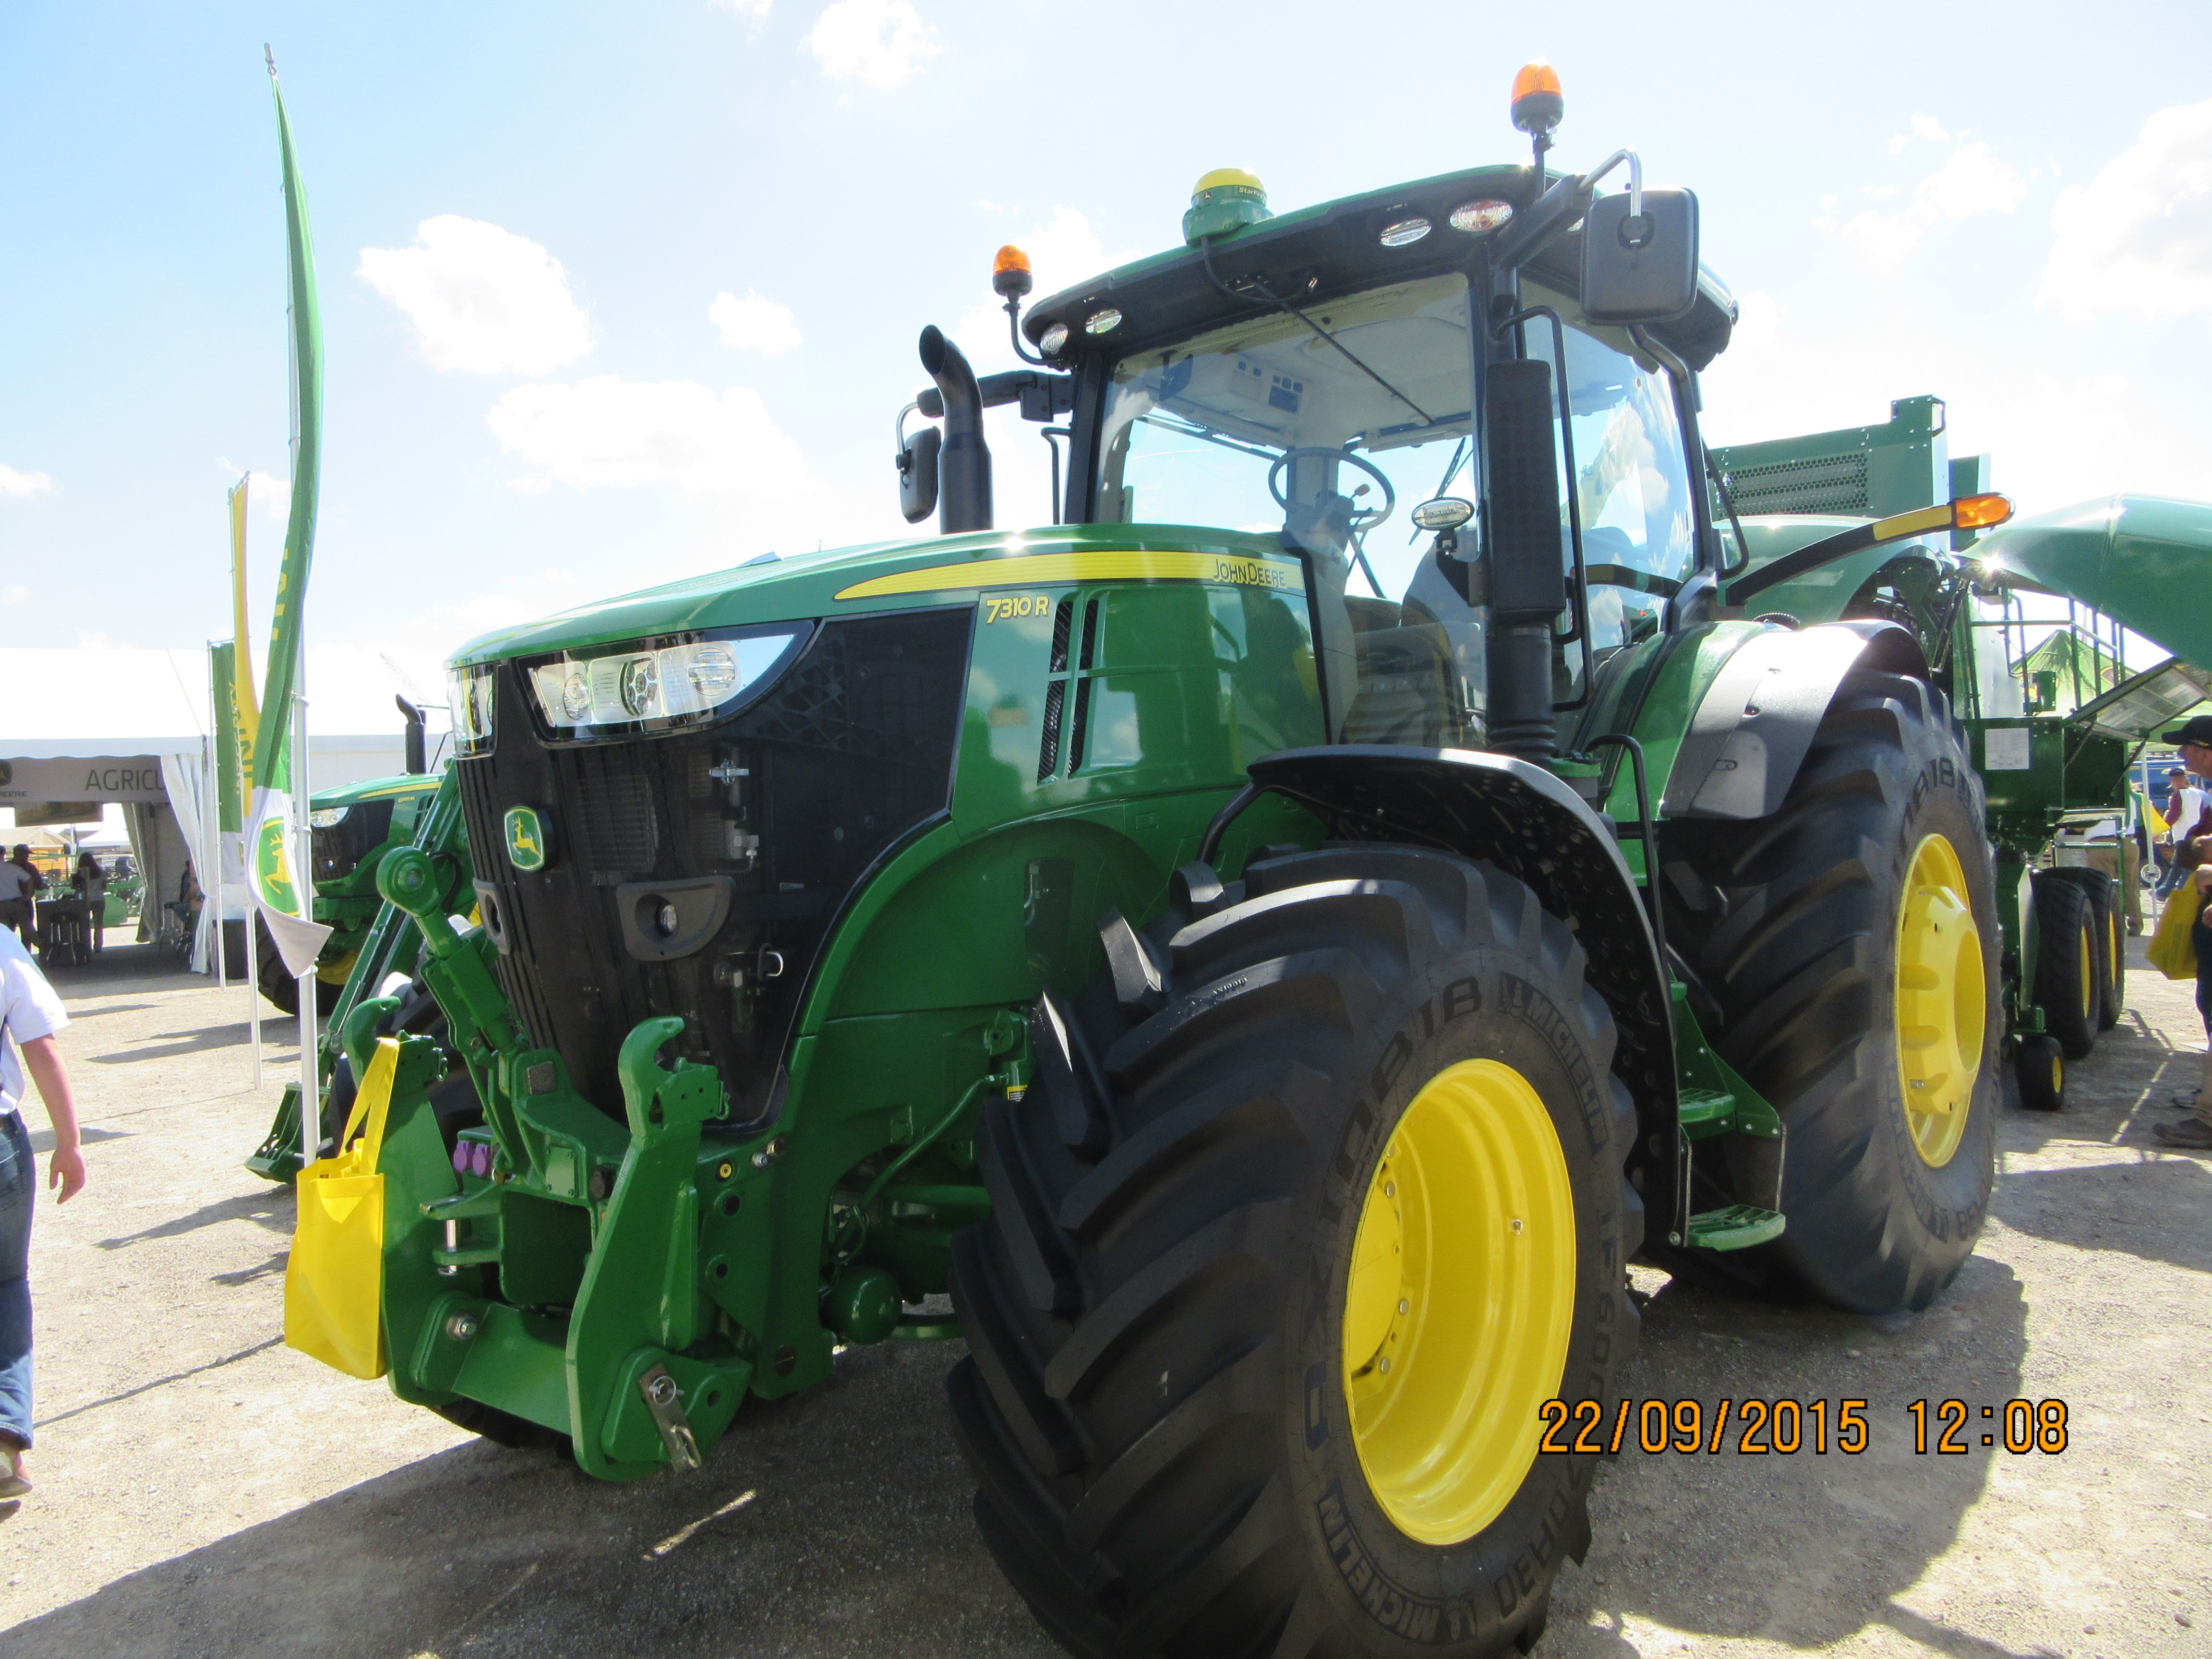 260 PTO hp John Deere 7310R.Not much more PTO then a 8760 of 25 years ago  the 8770 from 20 years ago